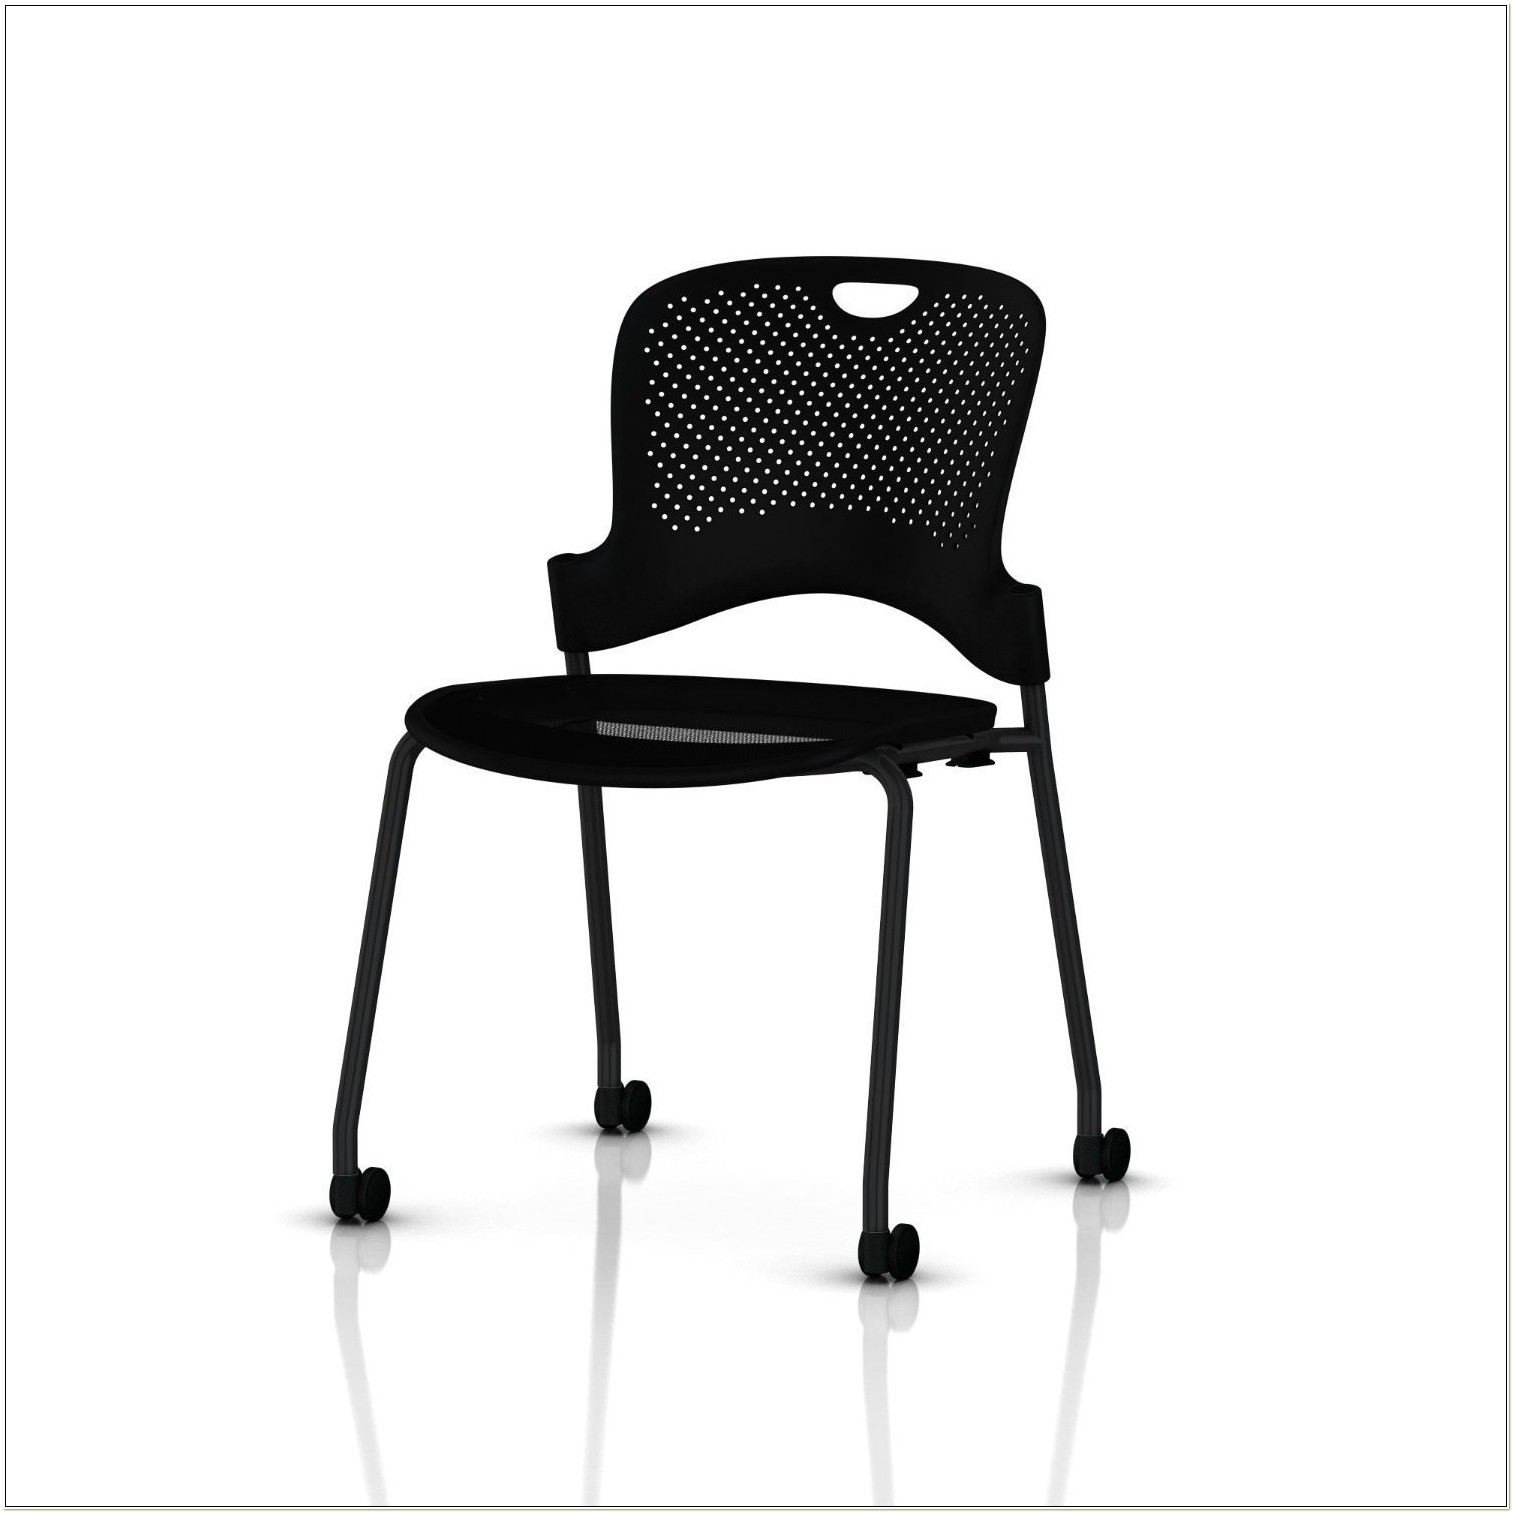 Herman Miller Caper Chair Specifications